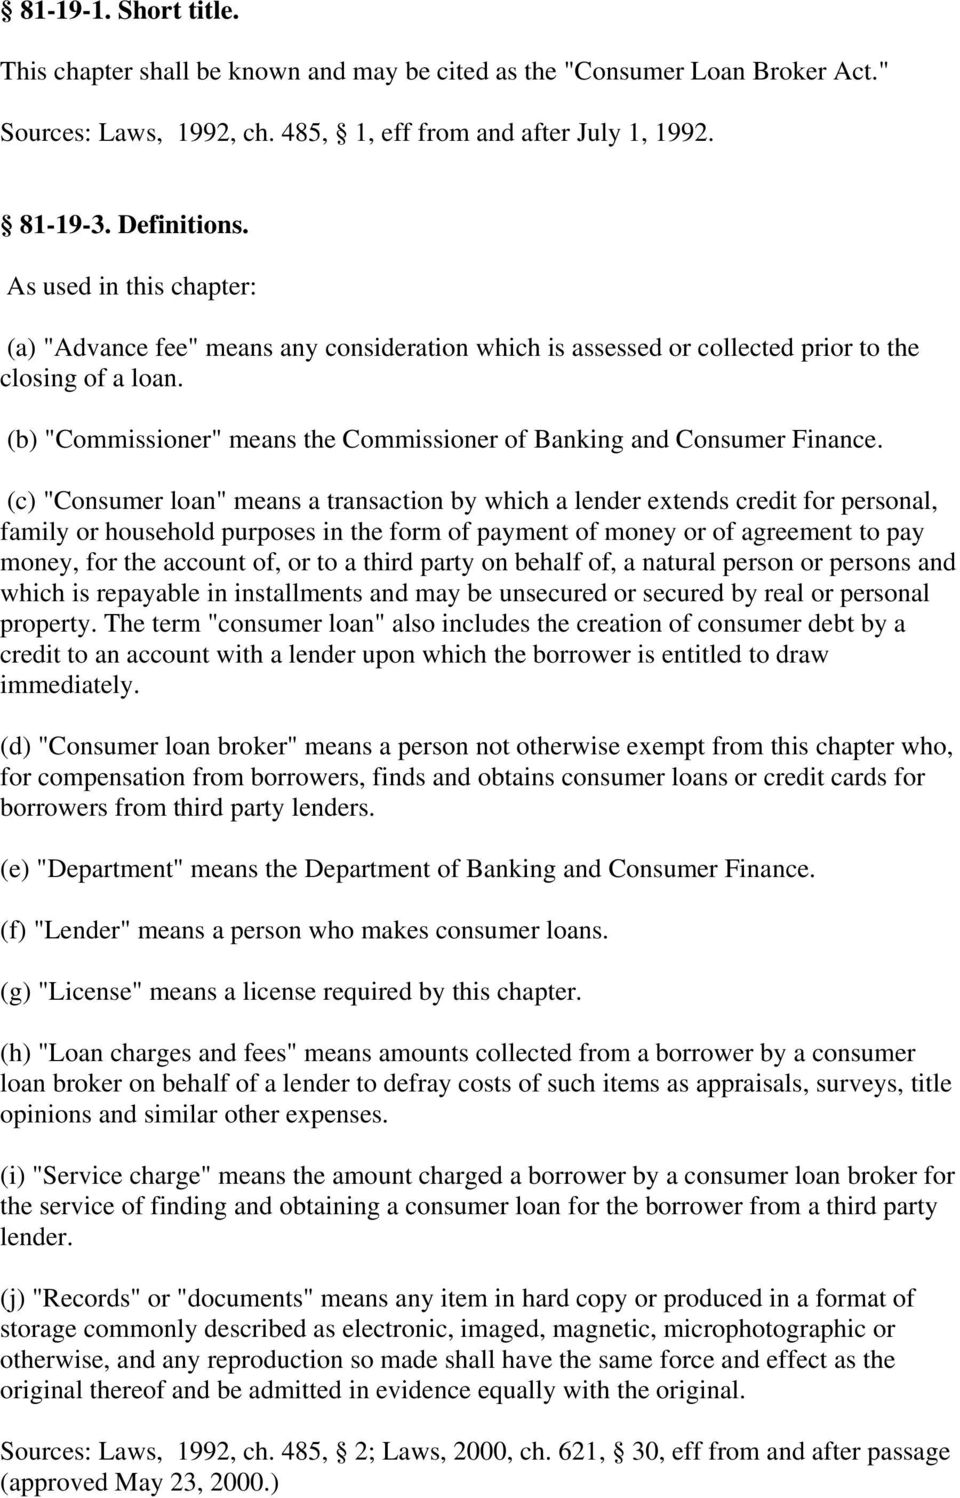 "(b) ""Commissioner"" means the Commissioner of Banking and Consumer Finance."